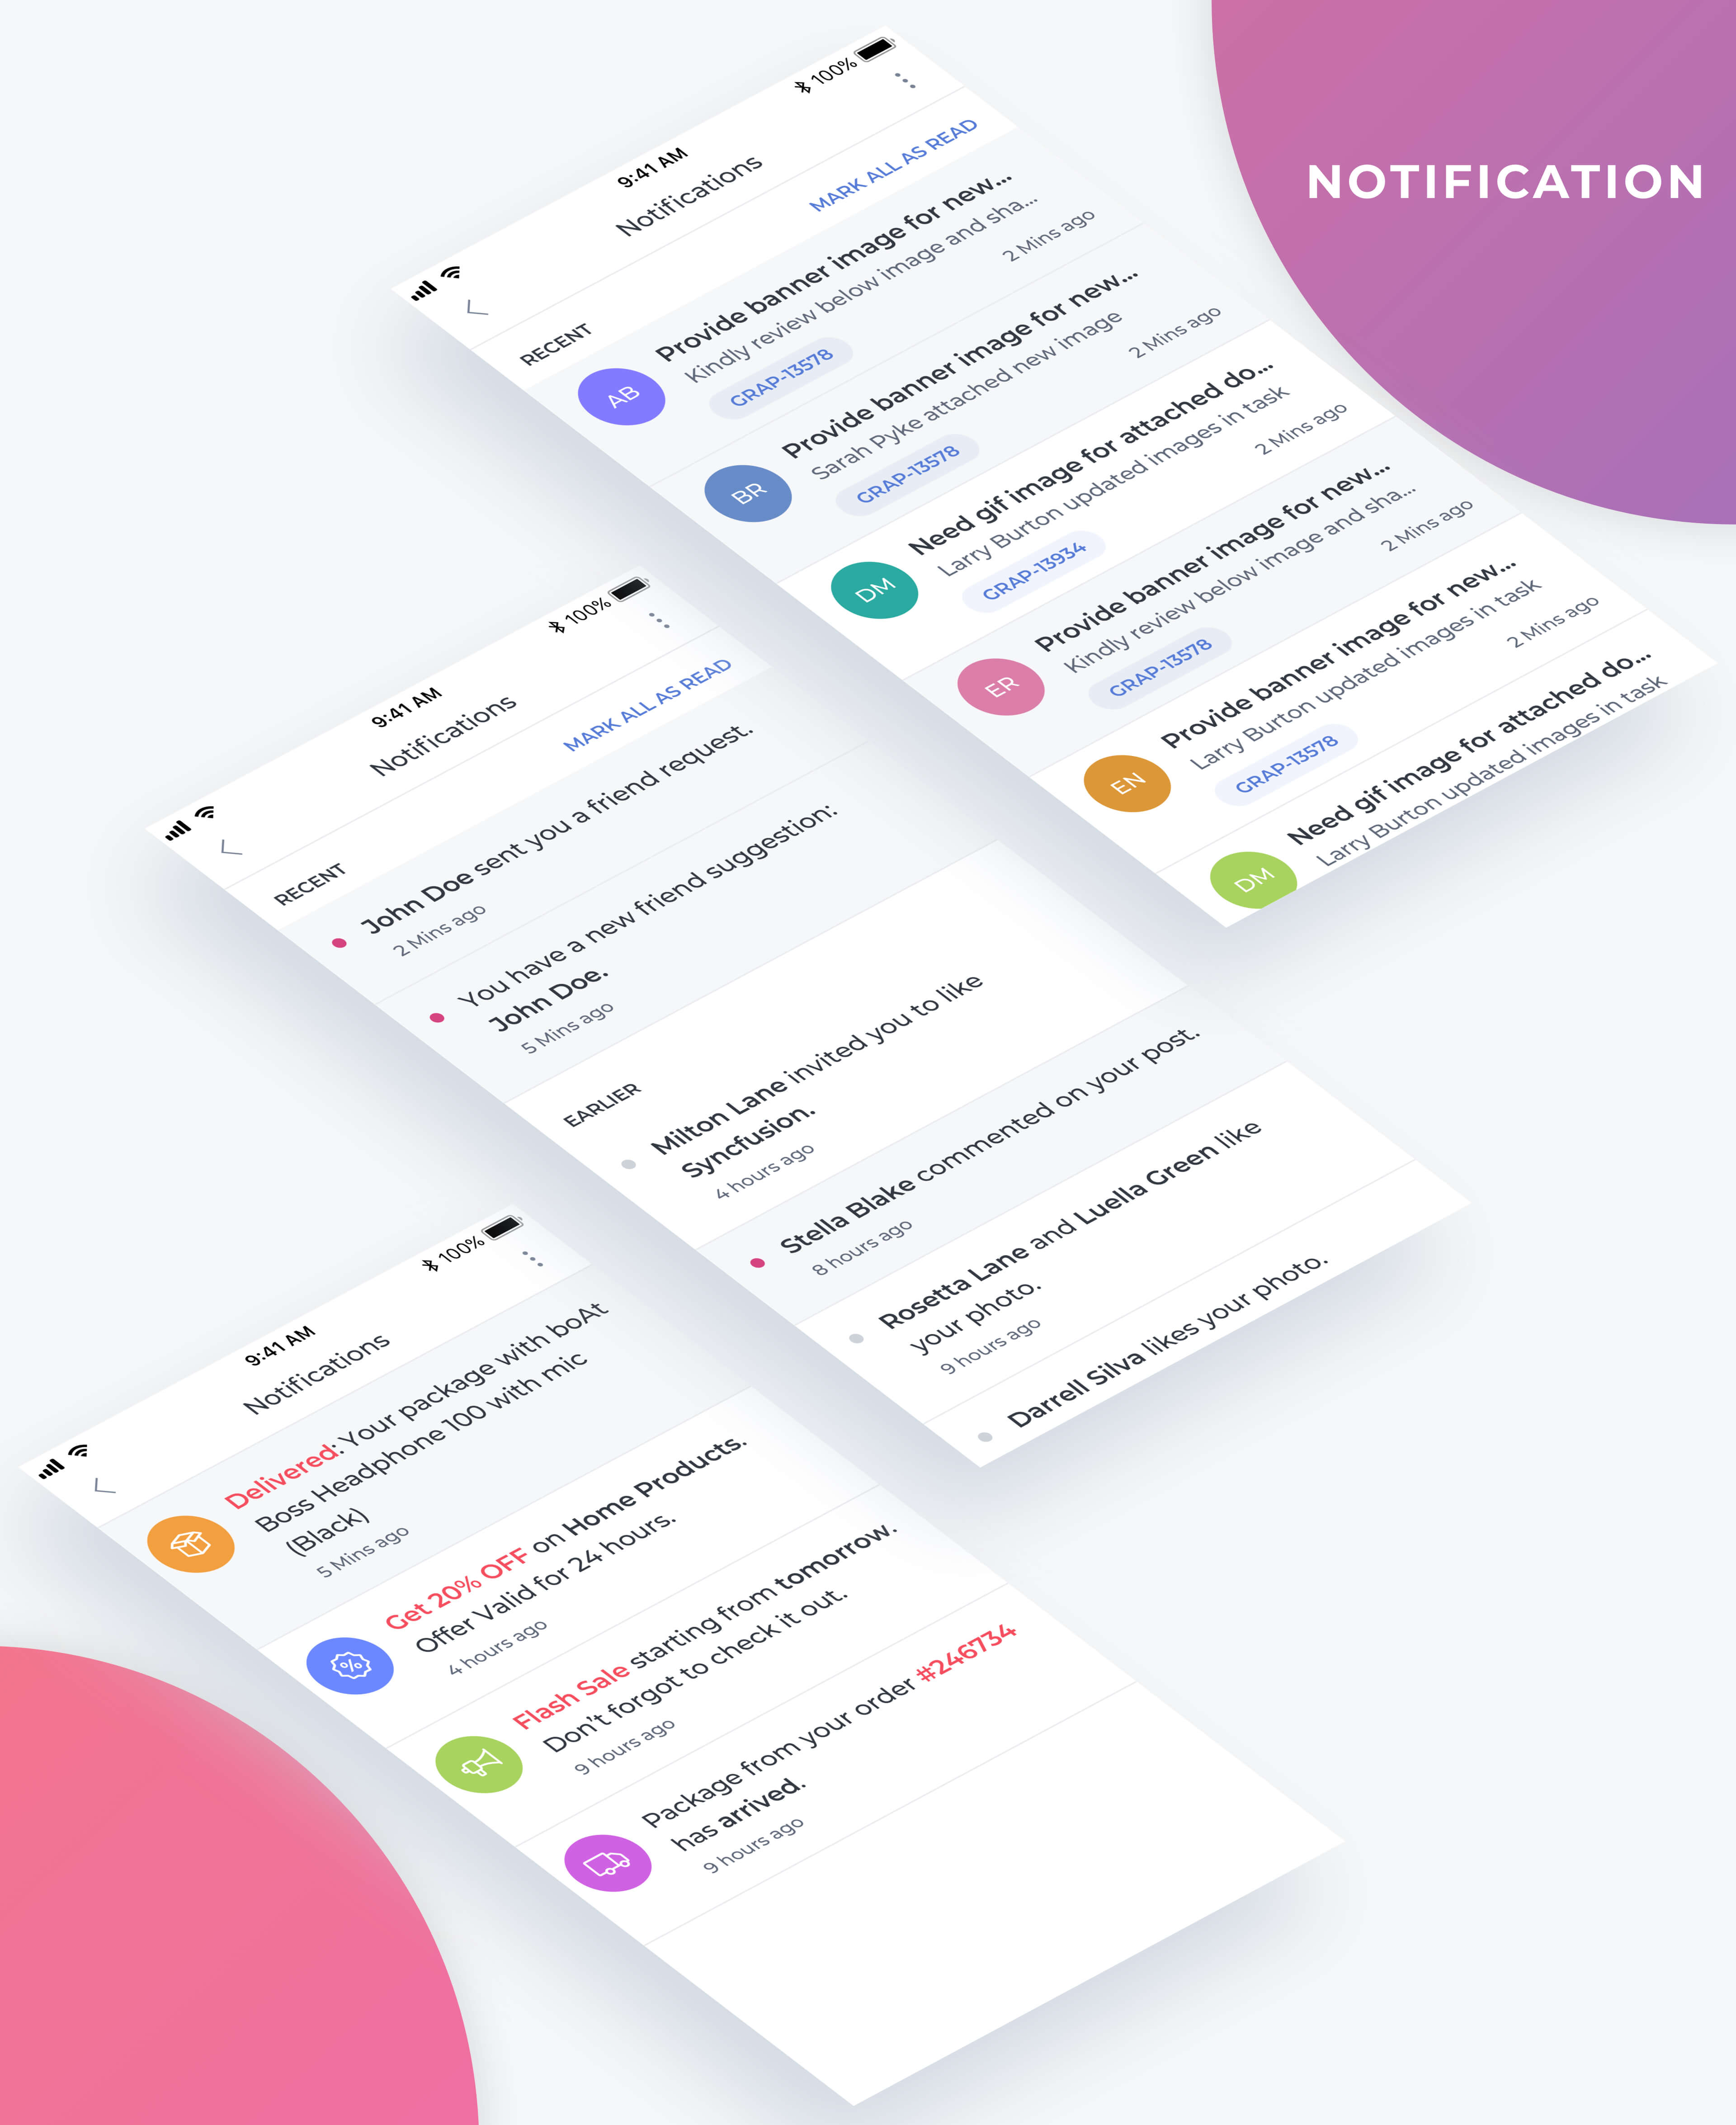 Essential UI Kit - Notification Page